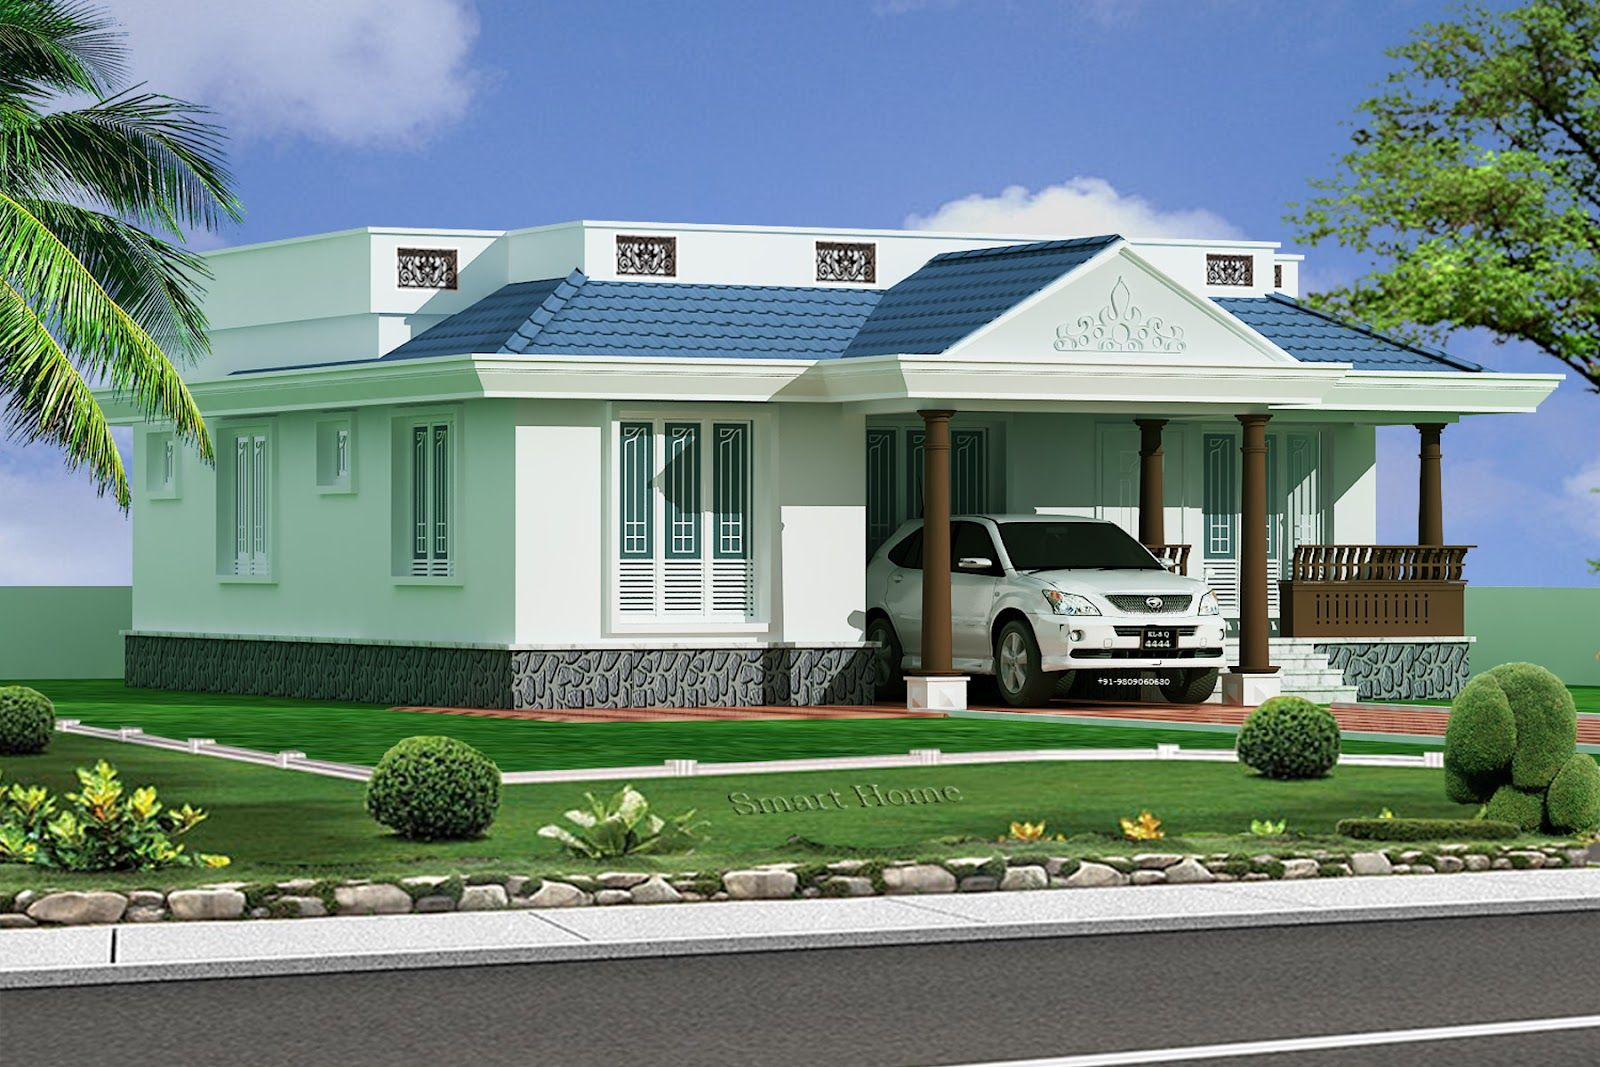 1100 sqft kerala home design httpwwwkeralahouseplannercom 1100